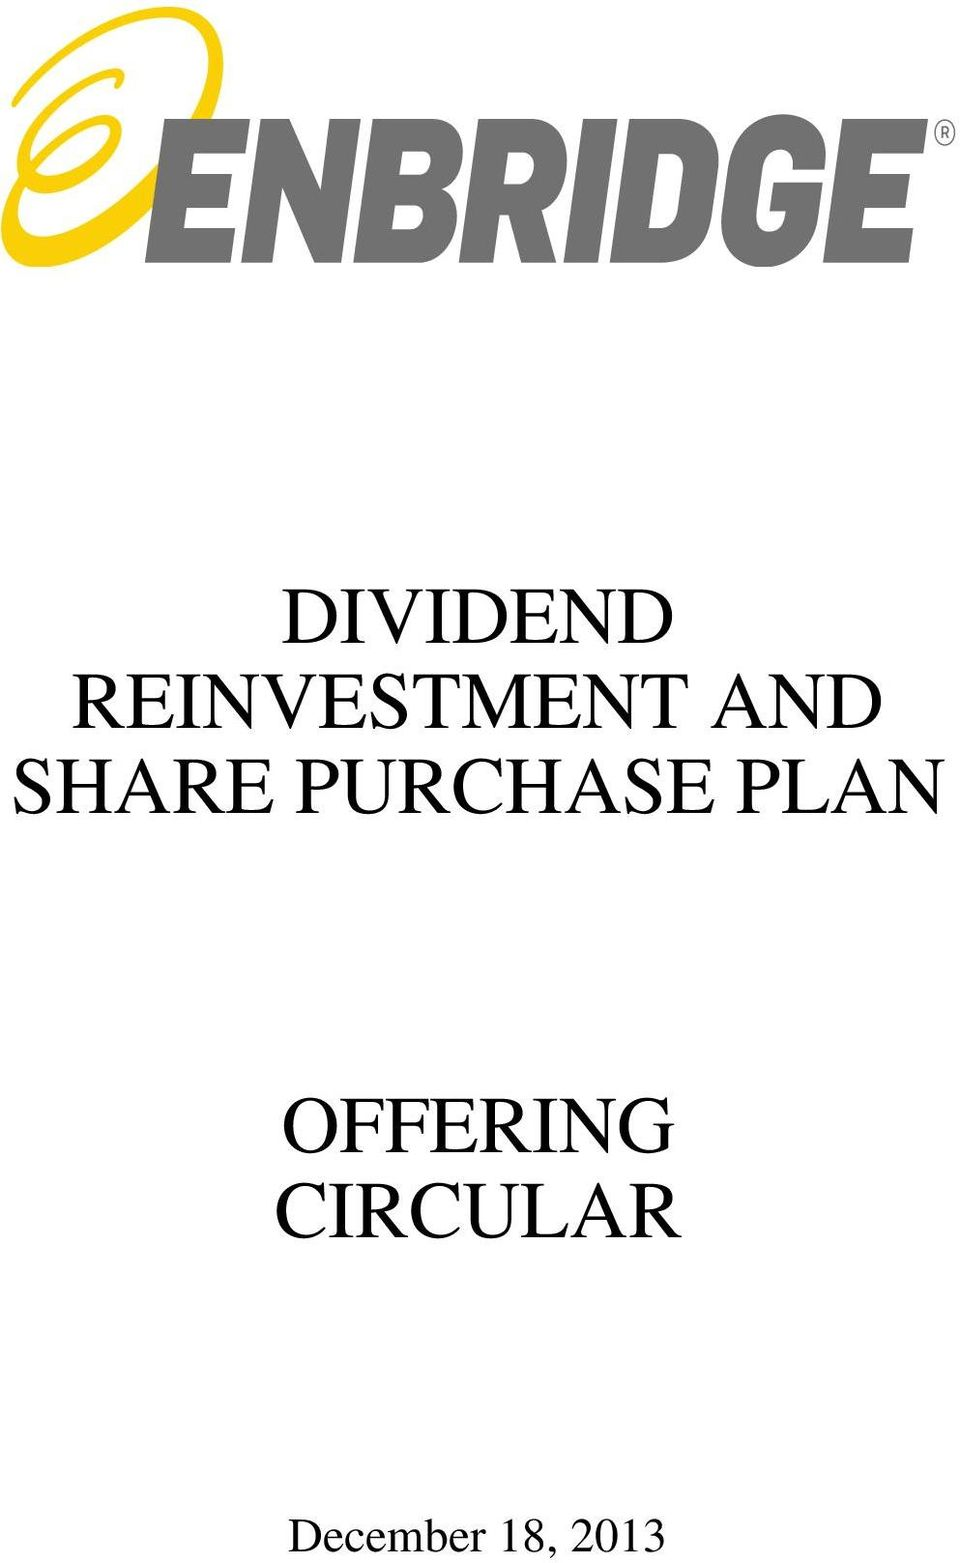 SHARE PURCHASE PLAN